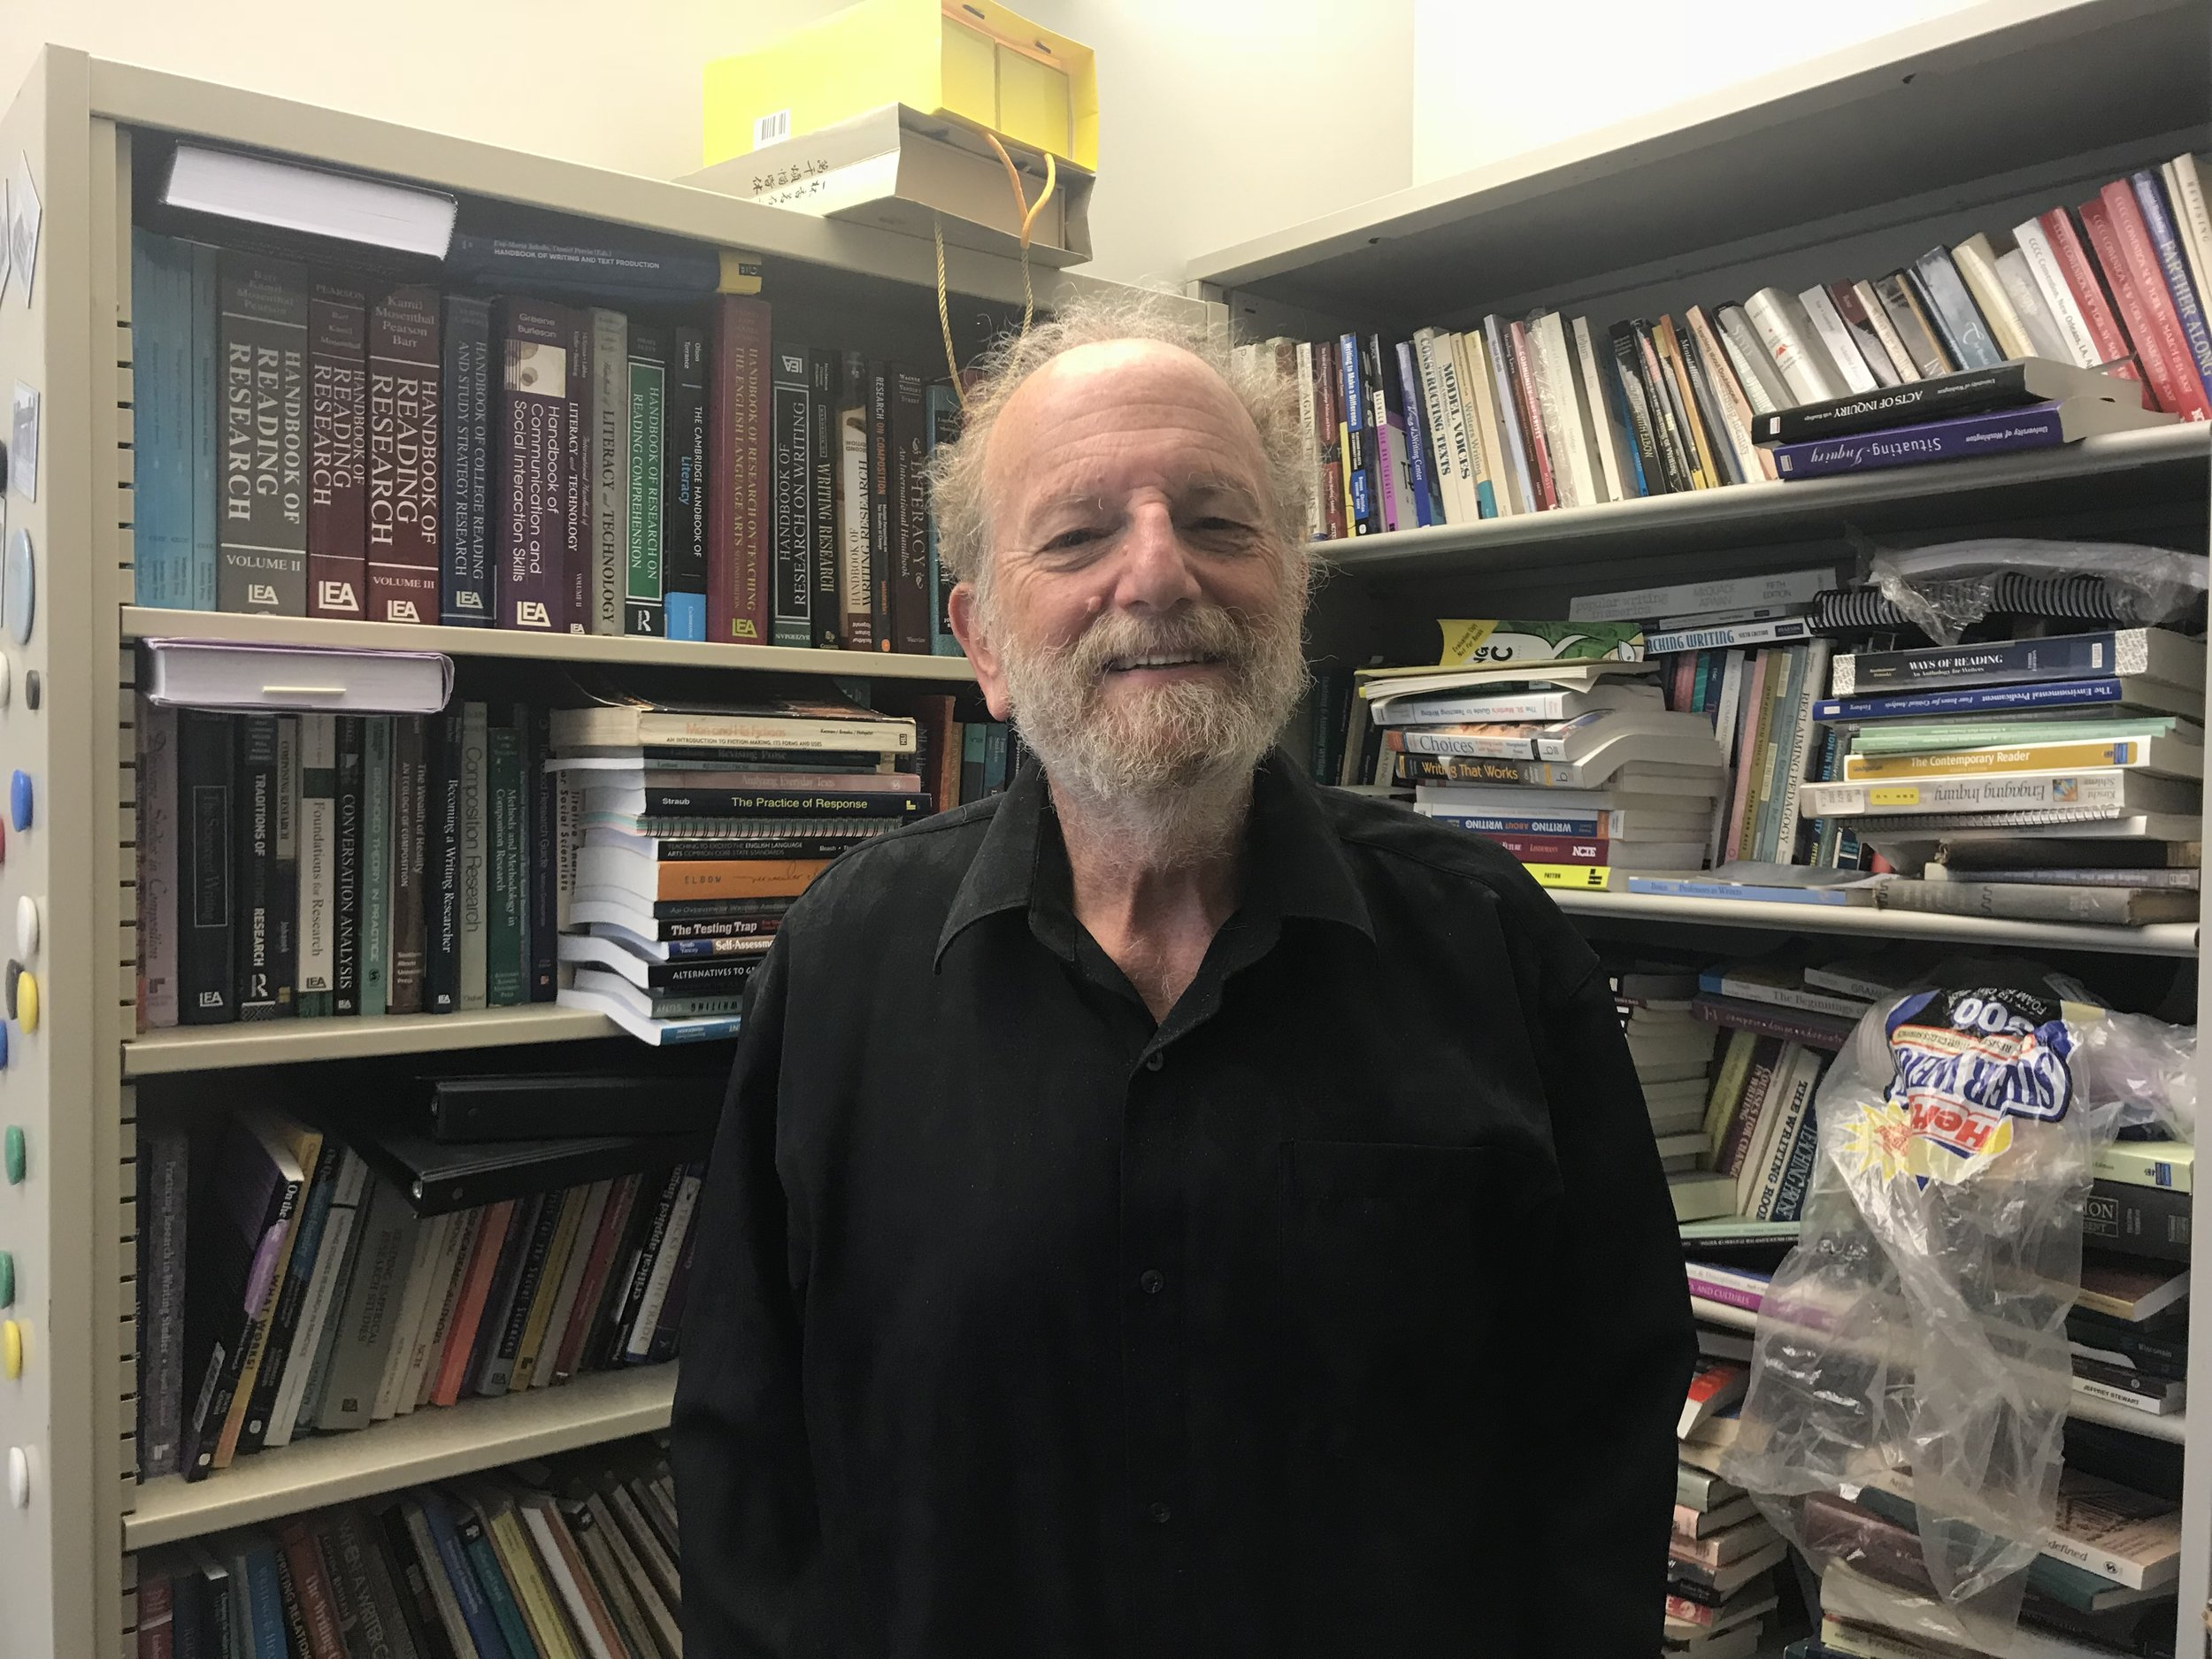 Education Professor and major donor Charles Bazerman in front of his collection of books.